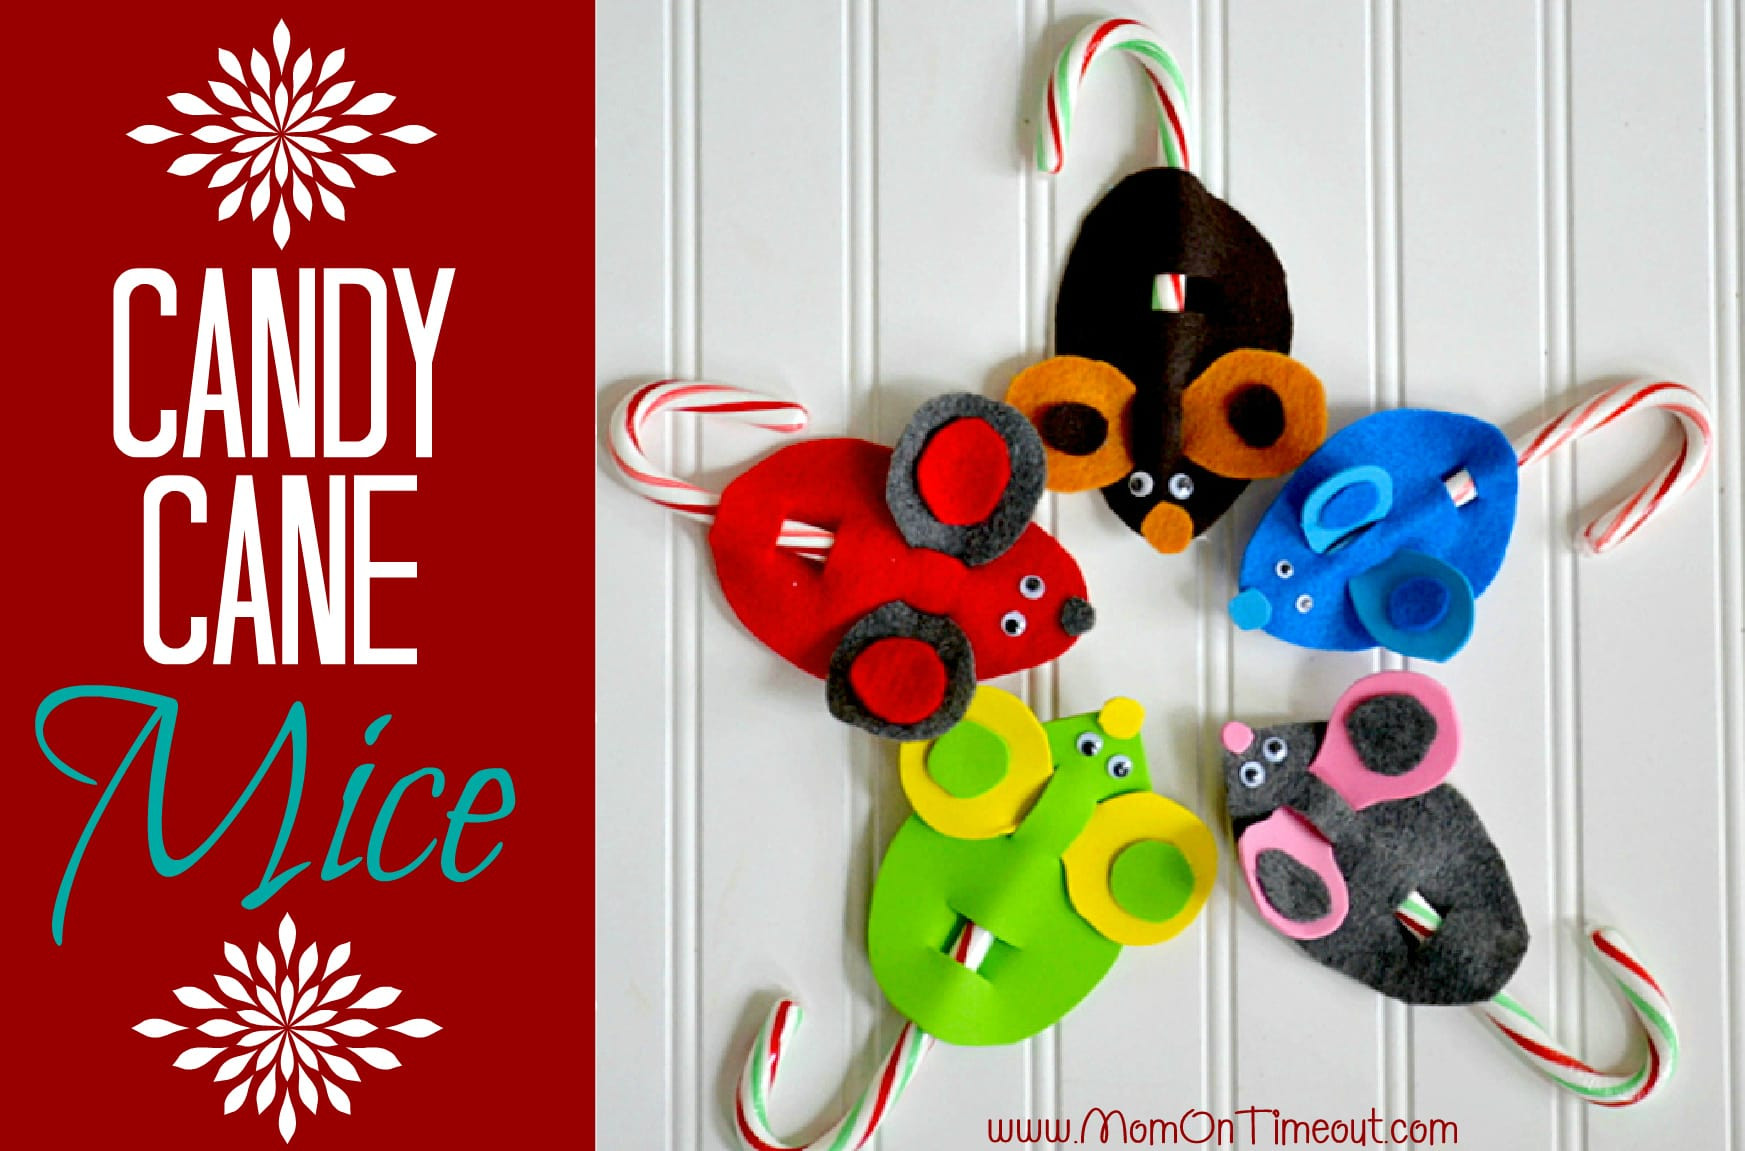 Candy Cane Crafts For Christmas  Candy Cane Mice